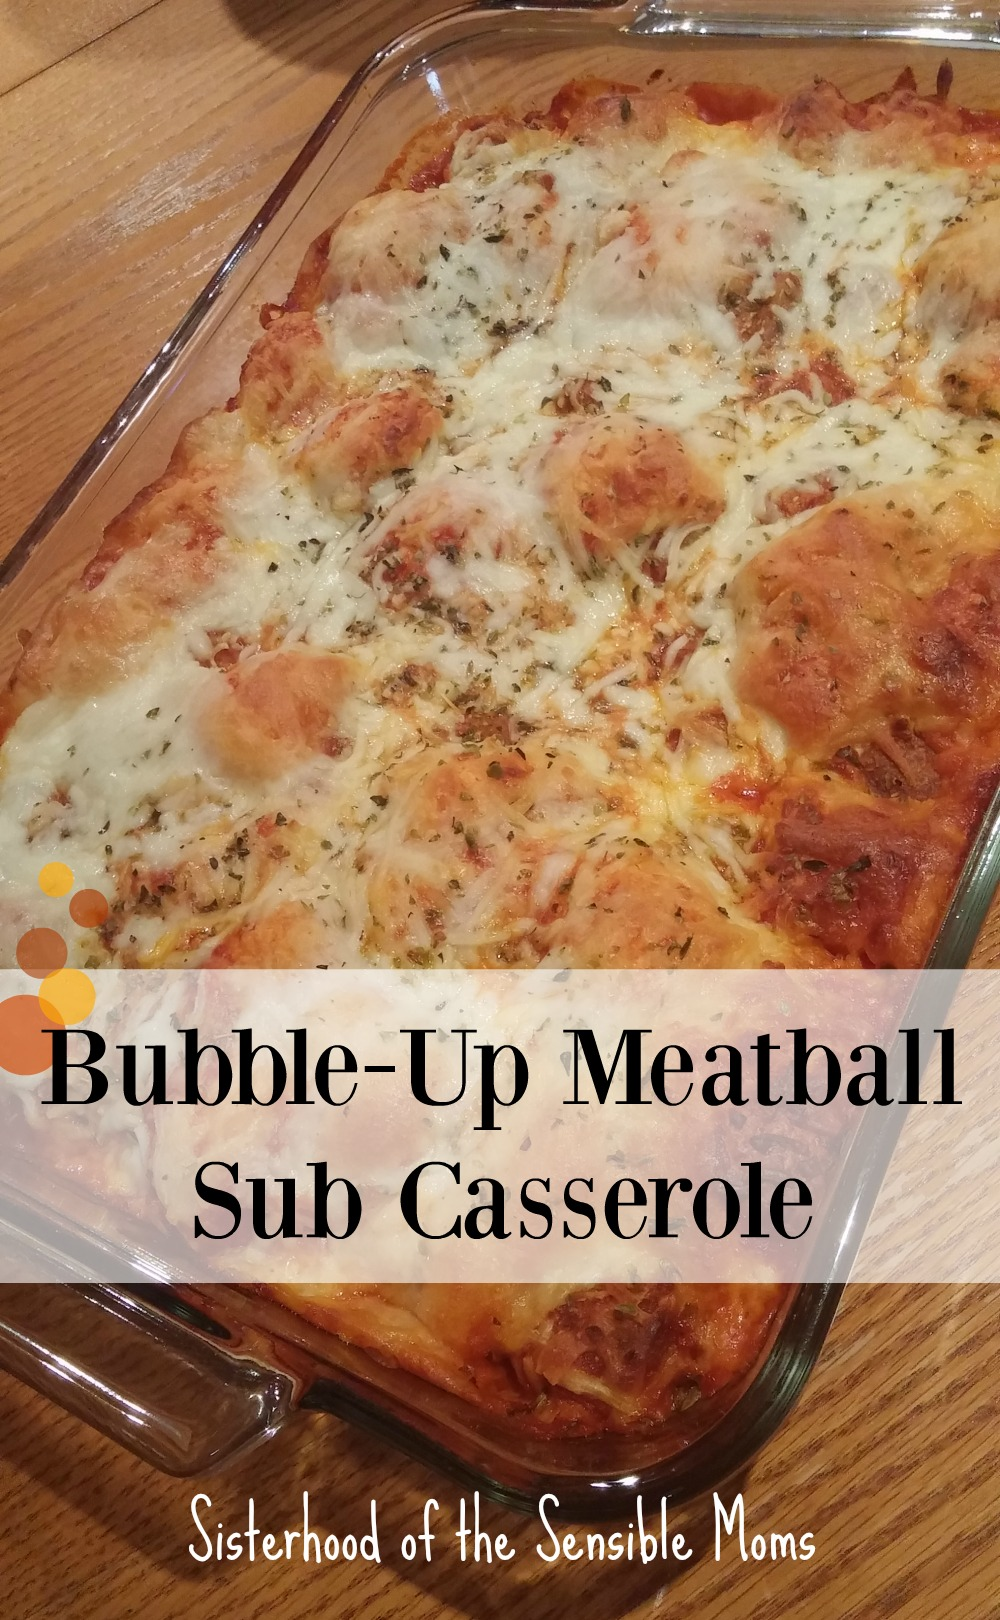 Delicious Bubble-Up Meatball Sub Casserole is low on effort, but big on satisfying taste. It's comfort food that's not too bad on the waistline. Such a yummy dinner recipe the whole family will love. | Sisterhood of the Sensible Moms